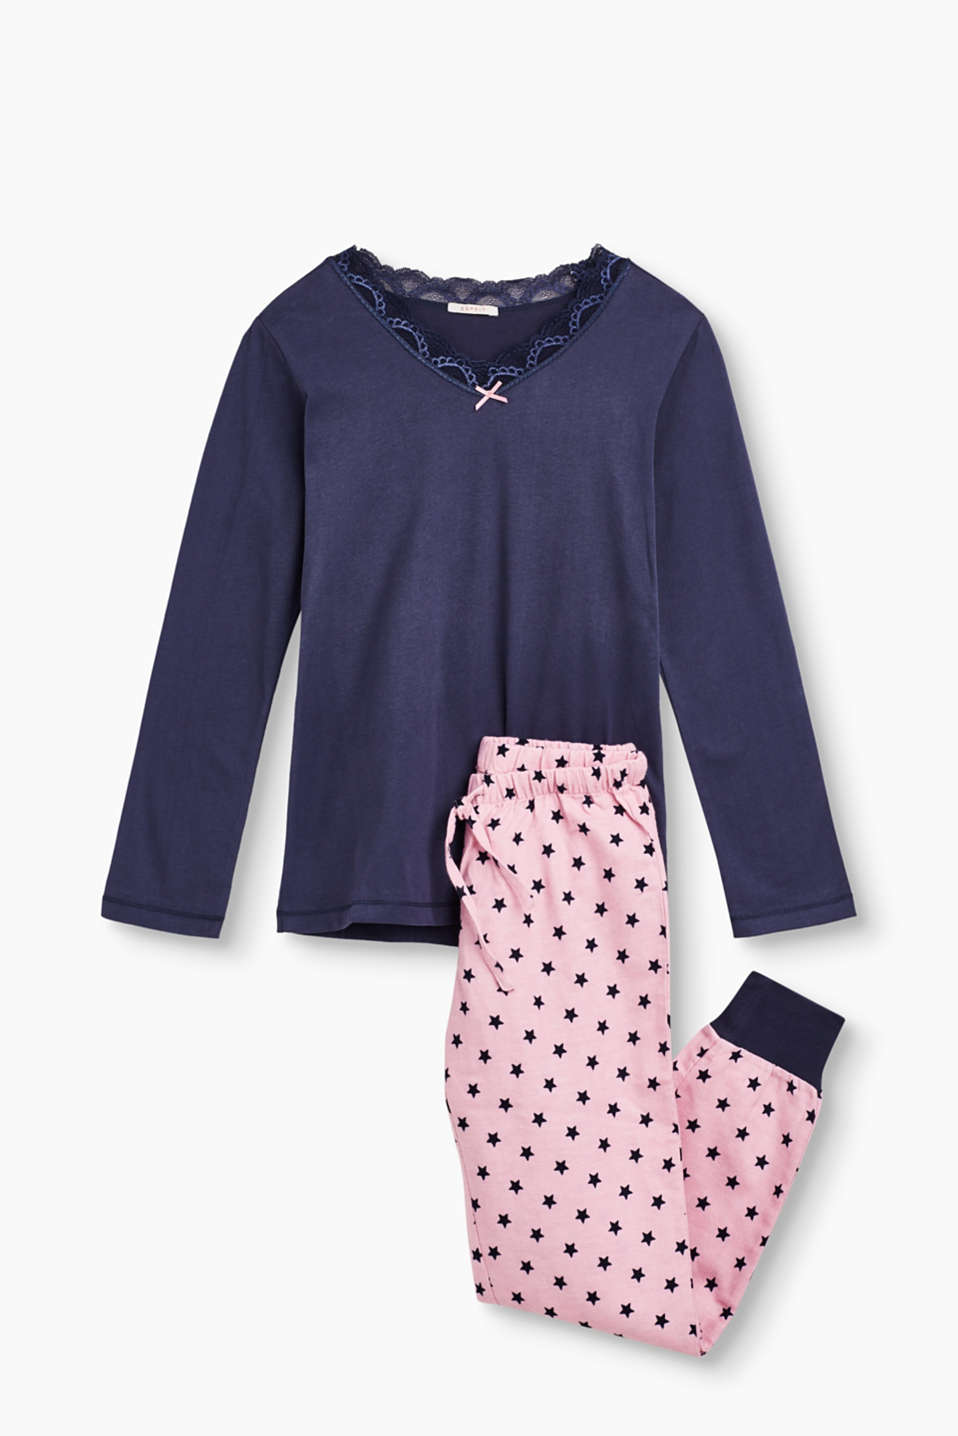 Lace detail and star pattern: these pyjamas are for playful girls